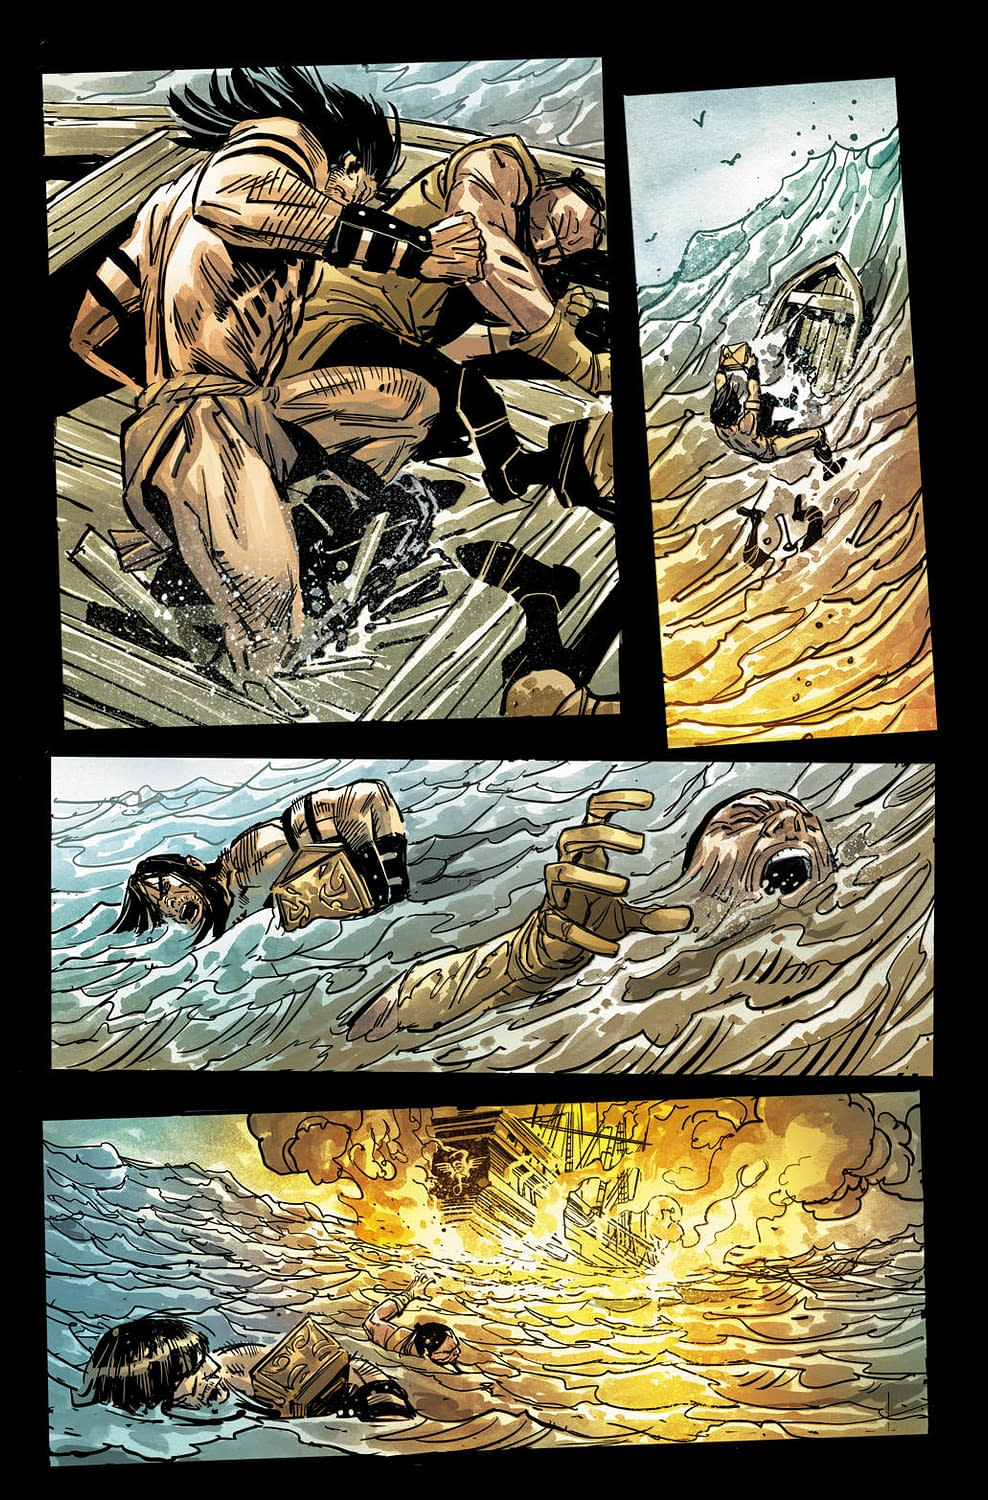 Conan Goes for the Low Blow in First Look at Savage Sword #1